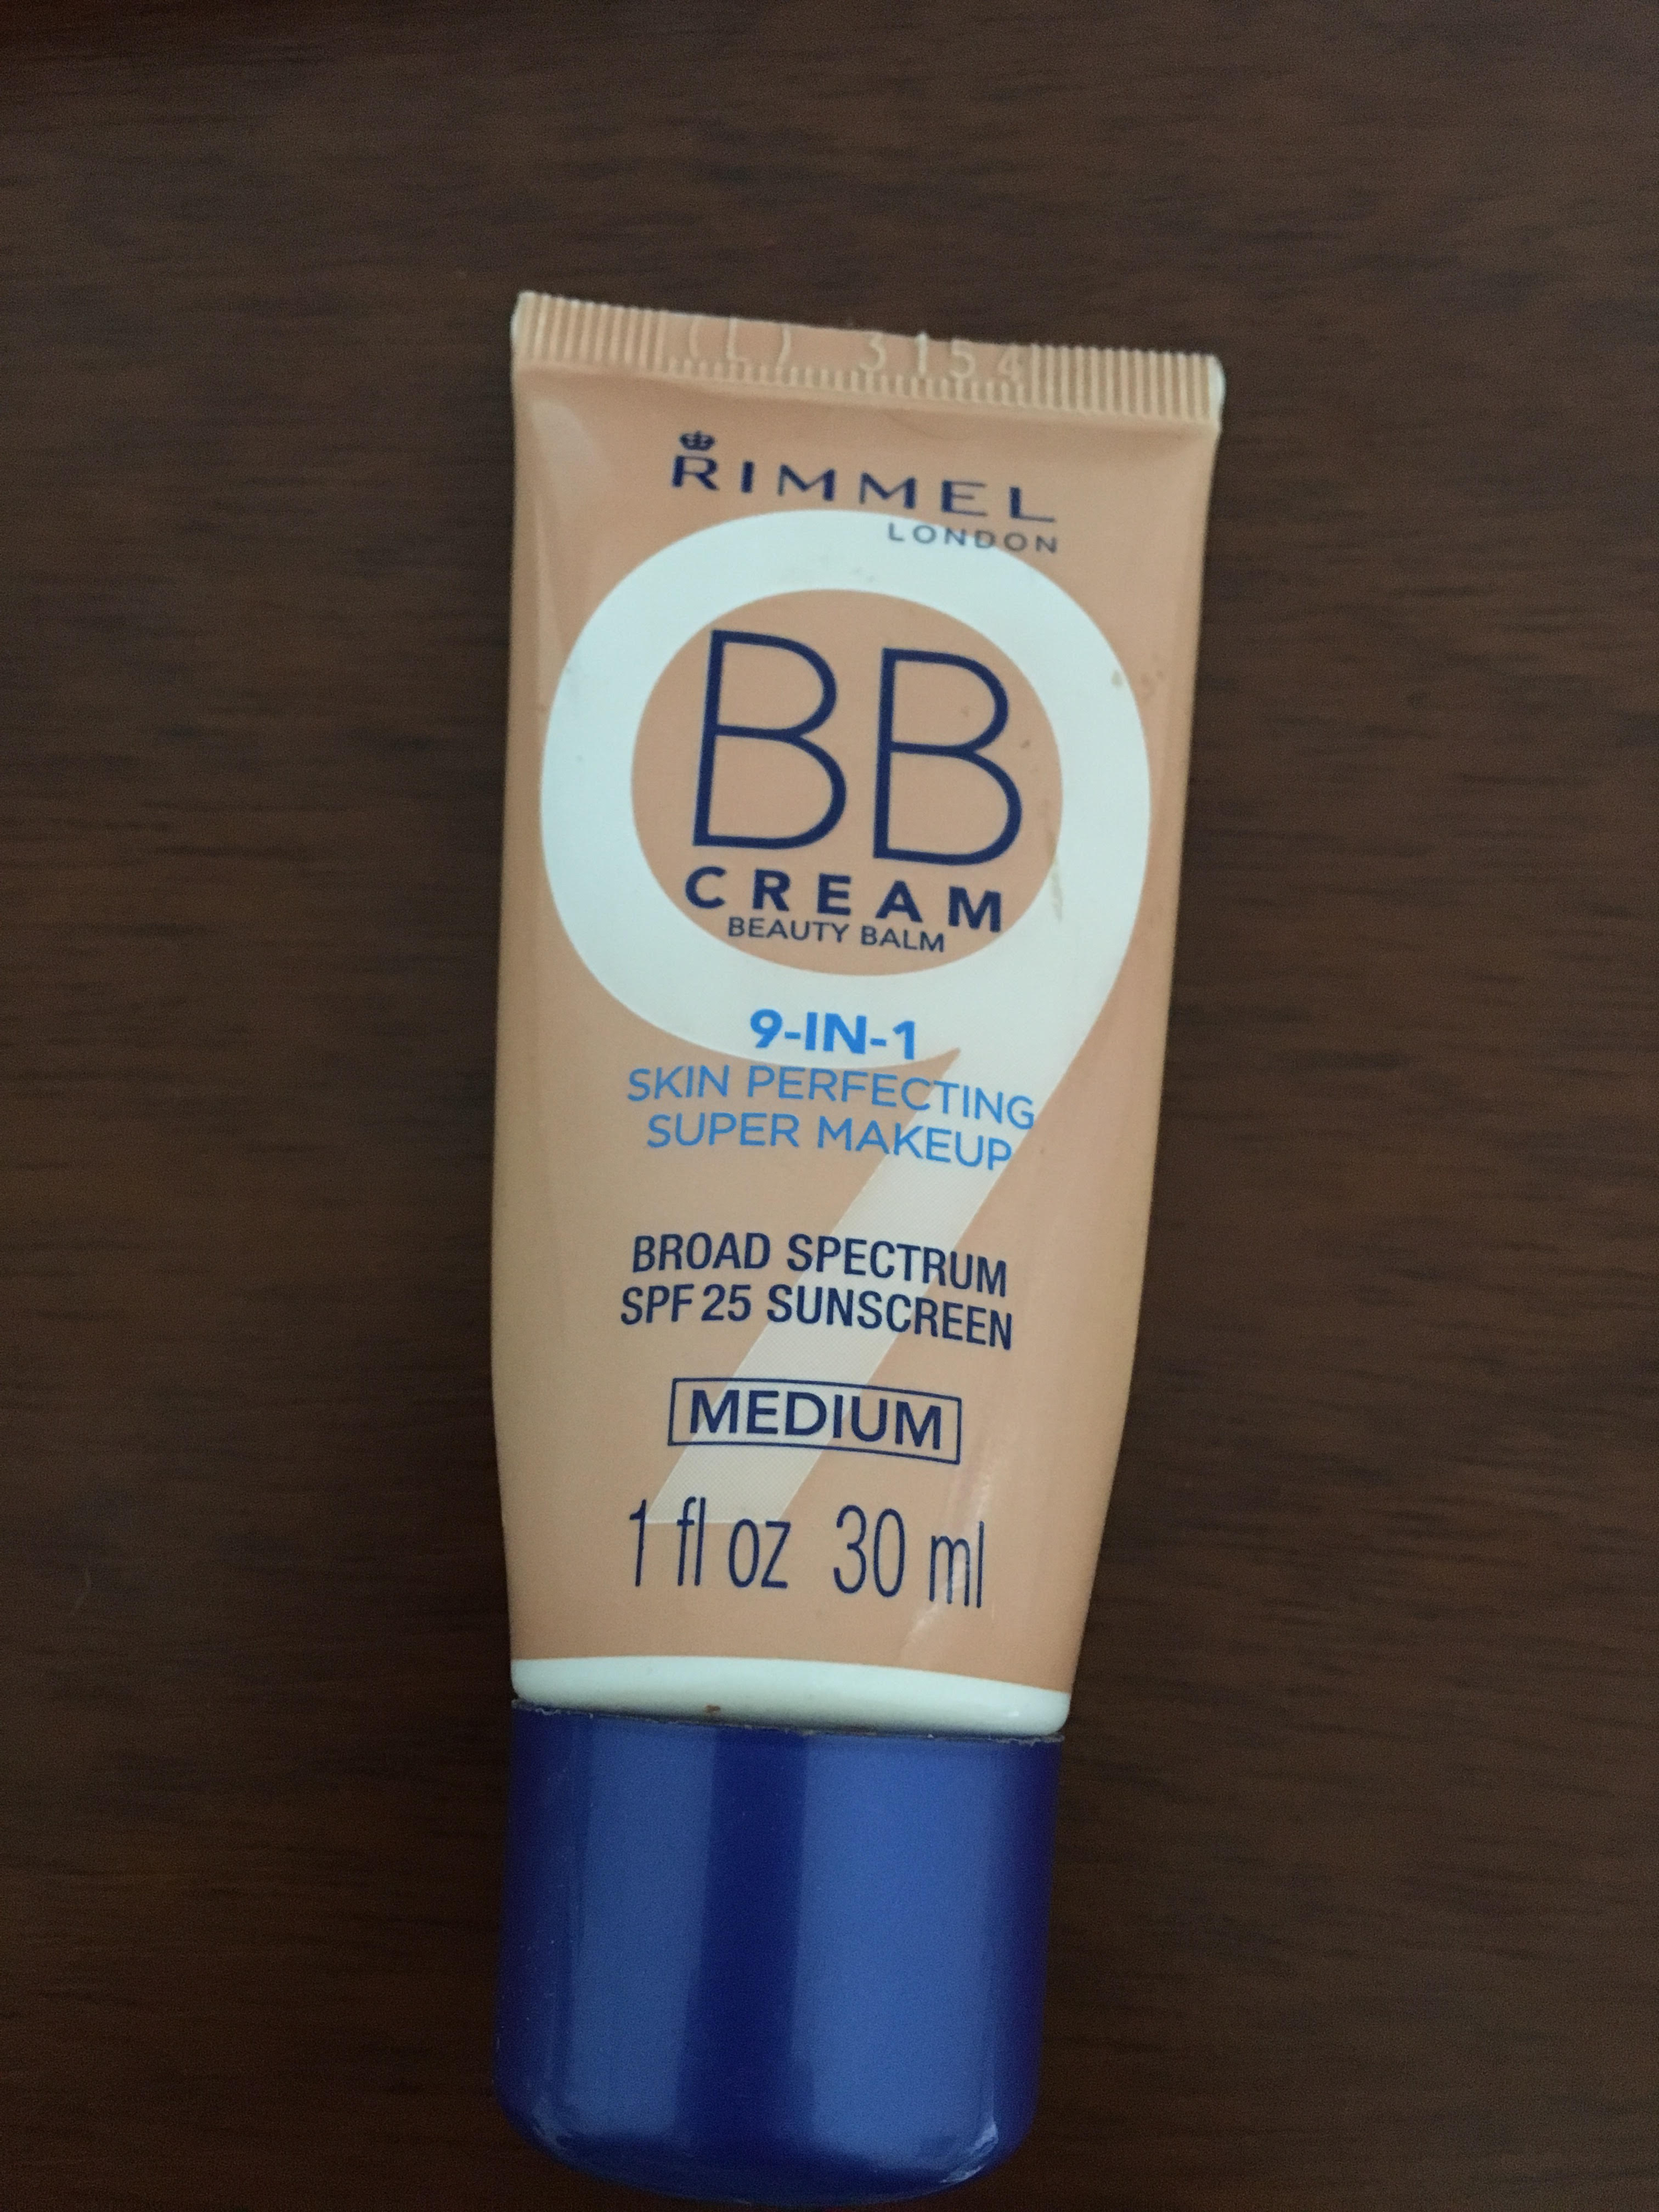 Photo of Rimmel London BB Cream 9-in-1 Skin Perfecting Super Makeup uploaded by Johanna G.